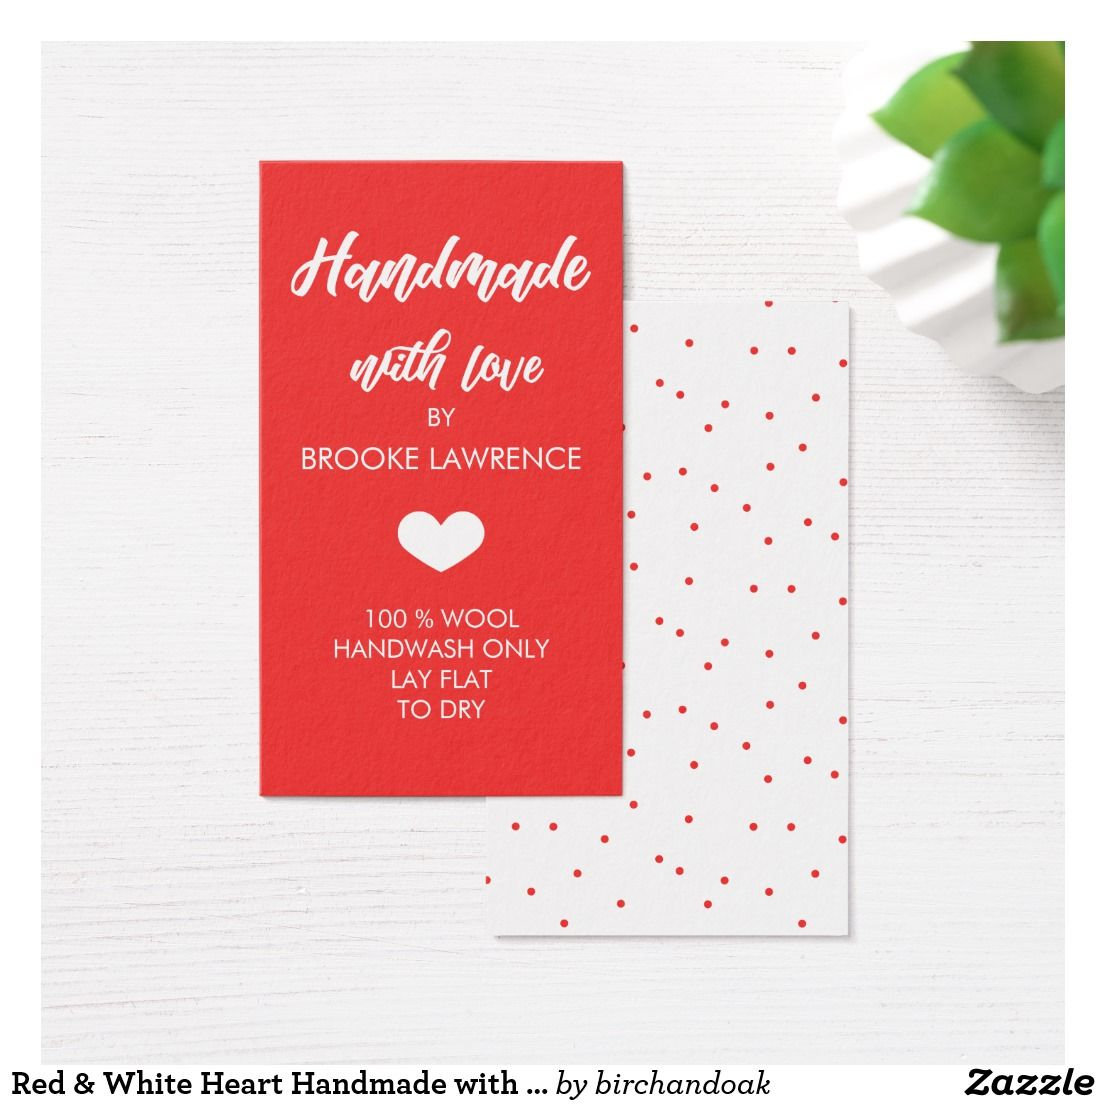 Red & White Heart Handmade with Love Business Card | Arts & Crafts ...